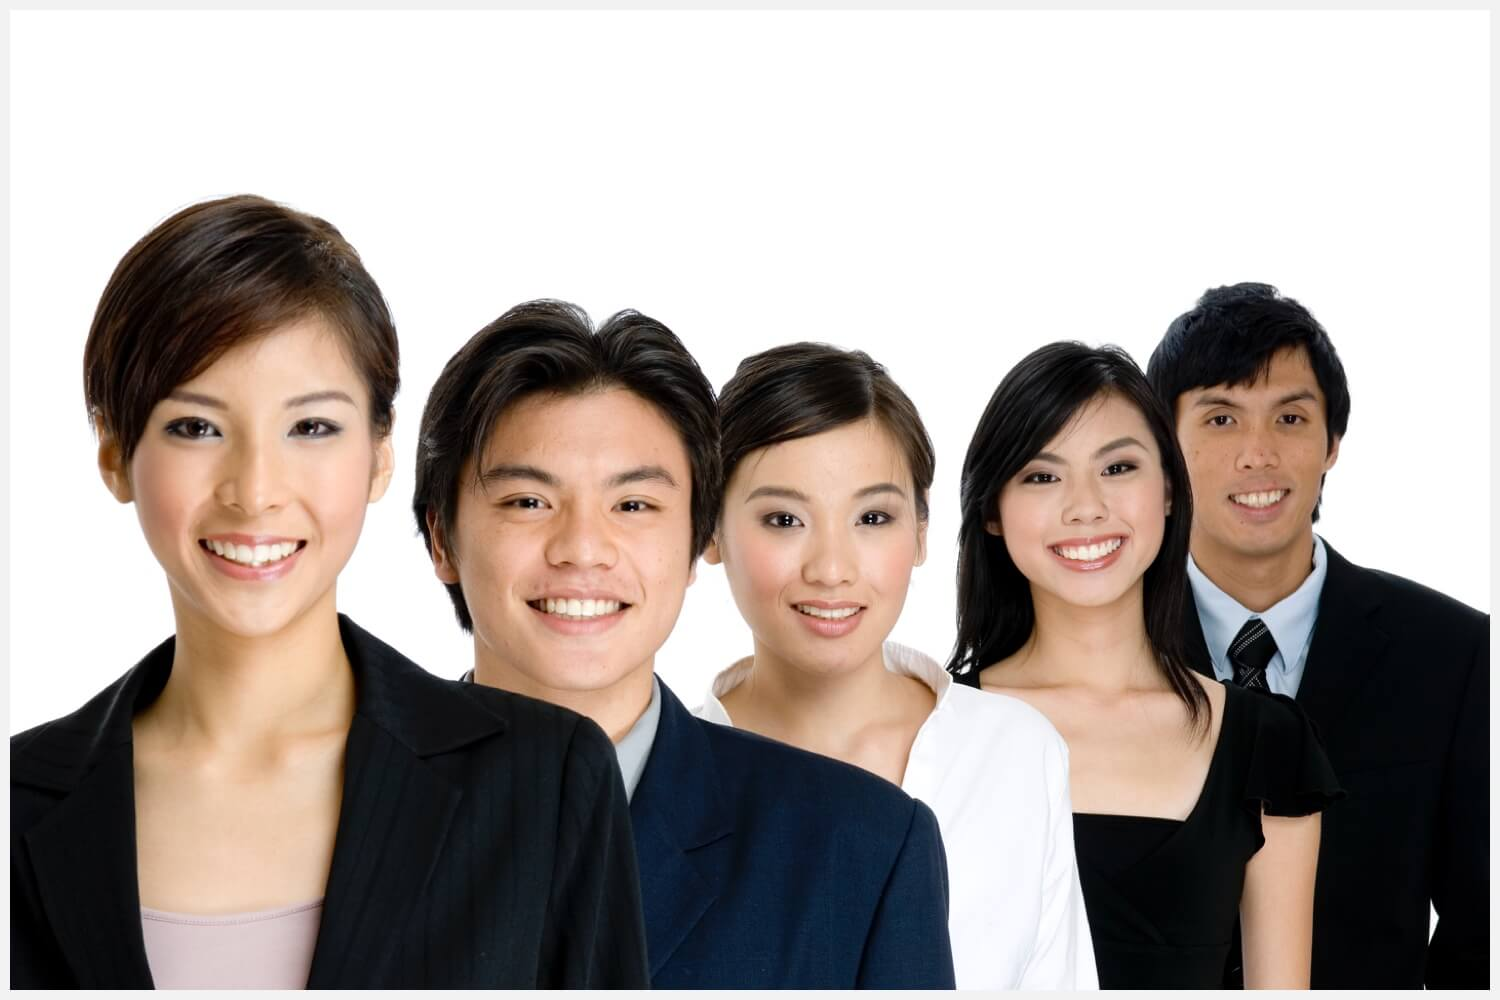 Stock photo of Asian businesspeople lined up and smiling.